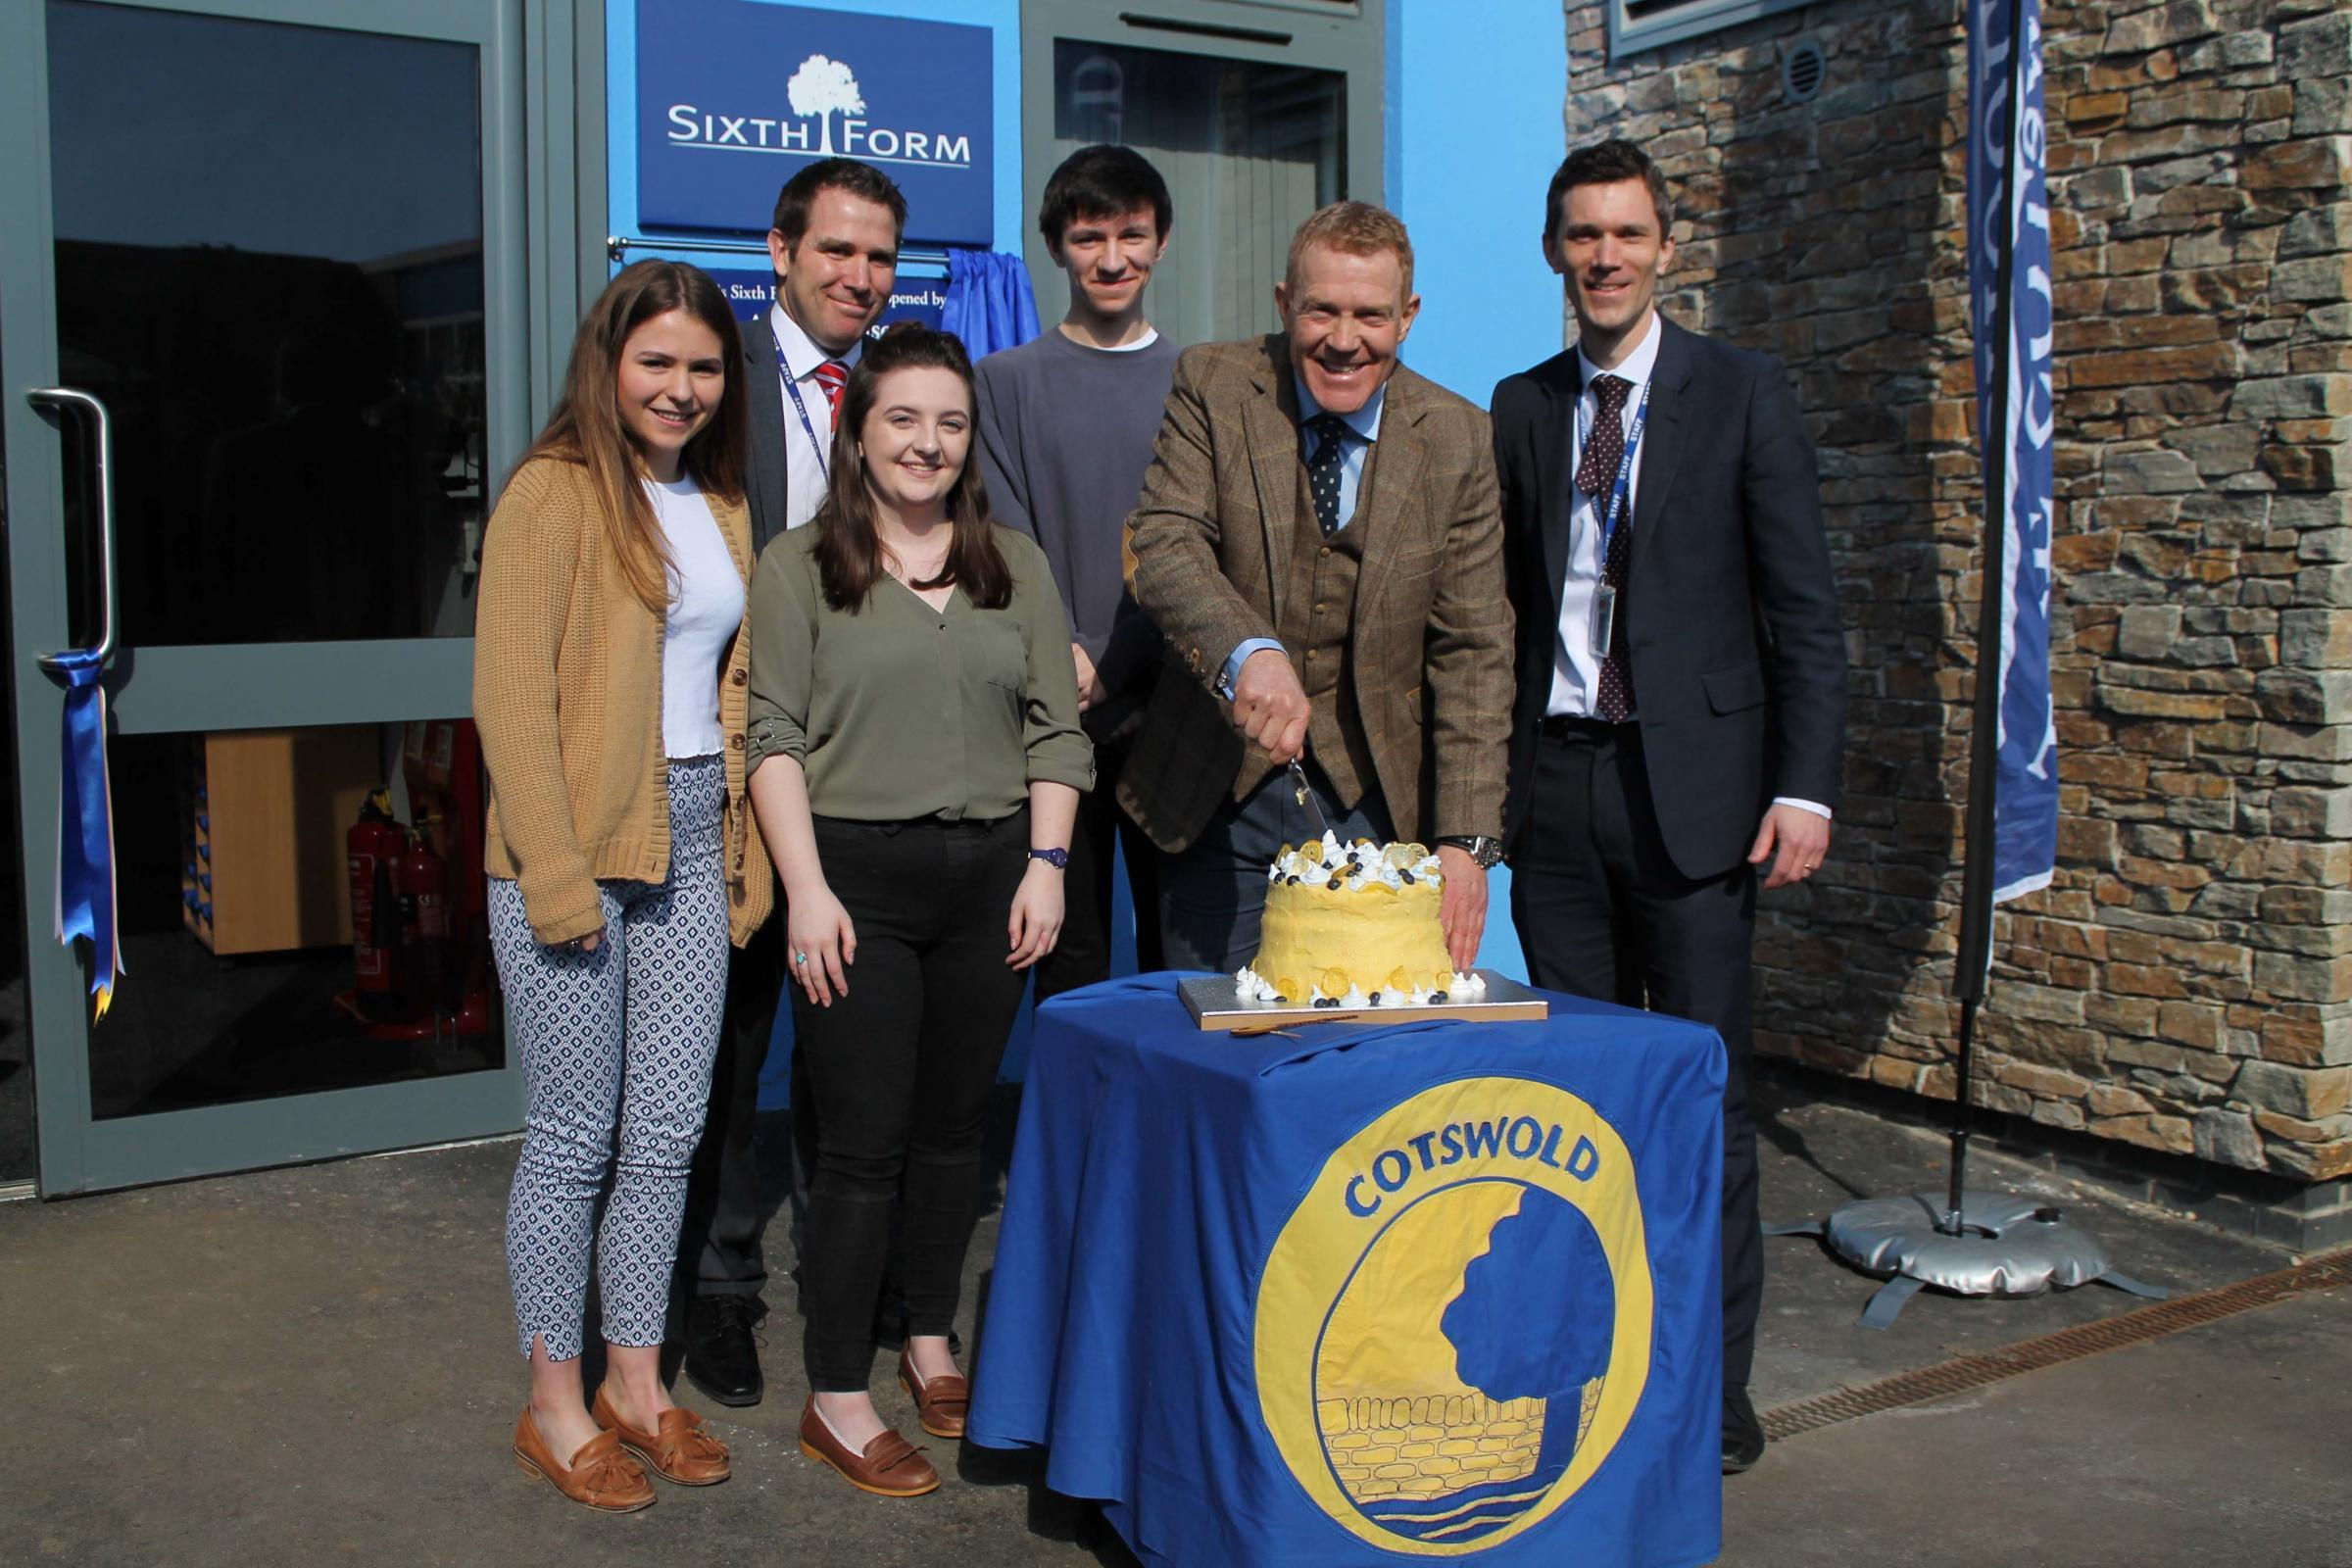 Adam Henson with Will Morgan, Phil White, Beth Hill and head boy Sam Blackma and head girl Eva Shoemark.